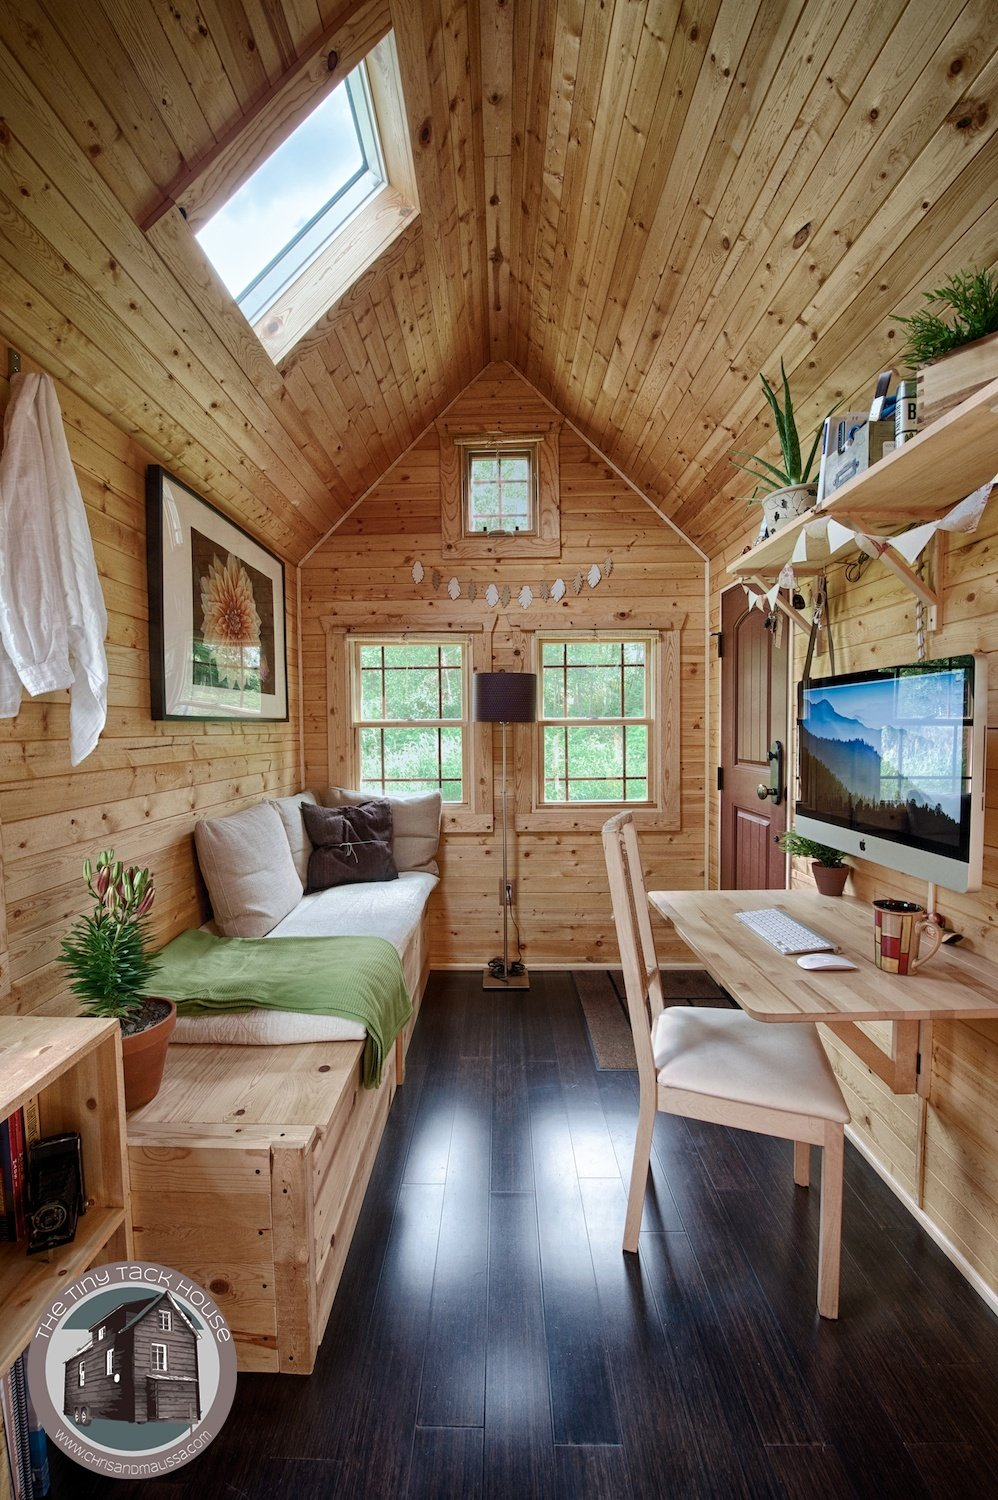 16 tiny houses you wish you could live in for Small home images